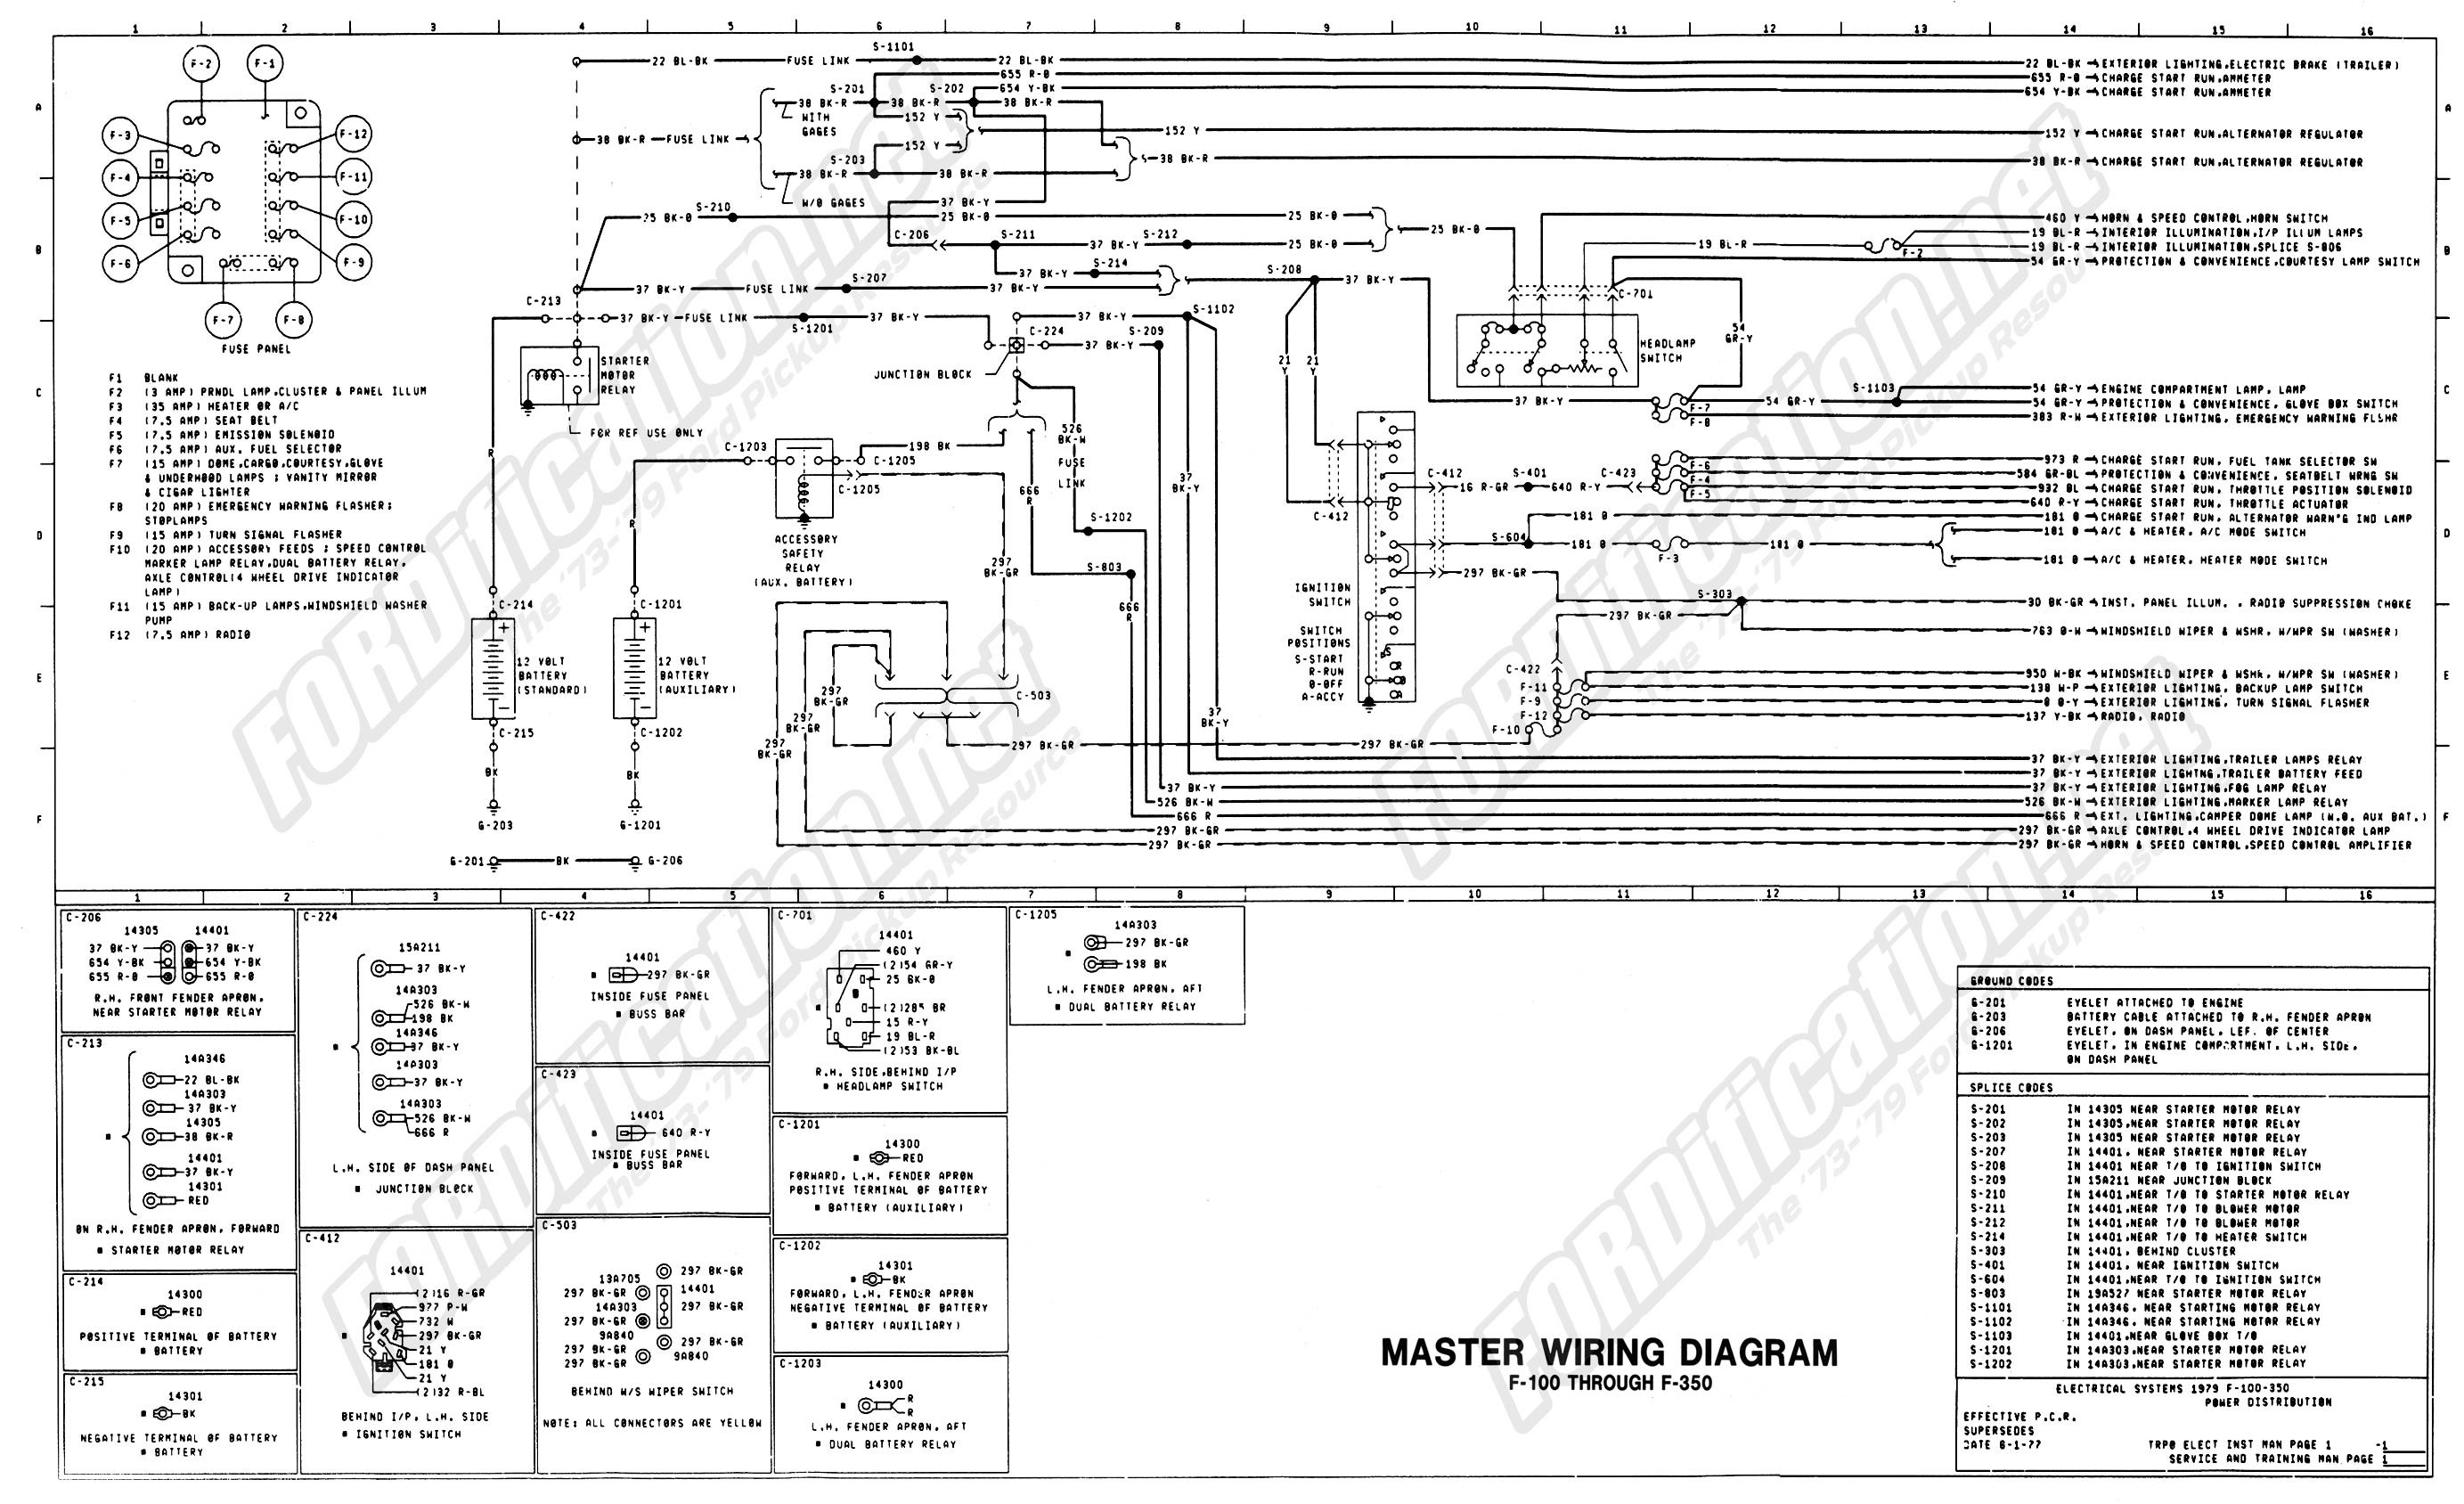 1976 Chevy Truck Wiring Diagram F150 Harness Further 1970 Ford Torino Ignition